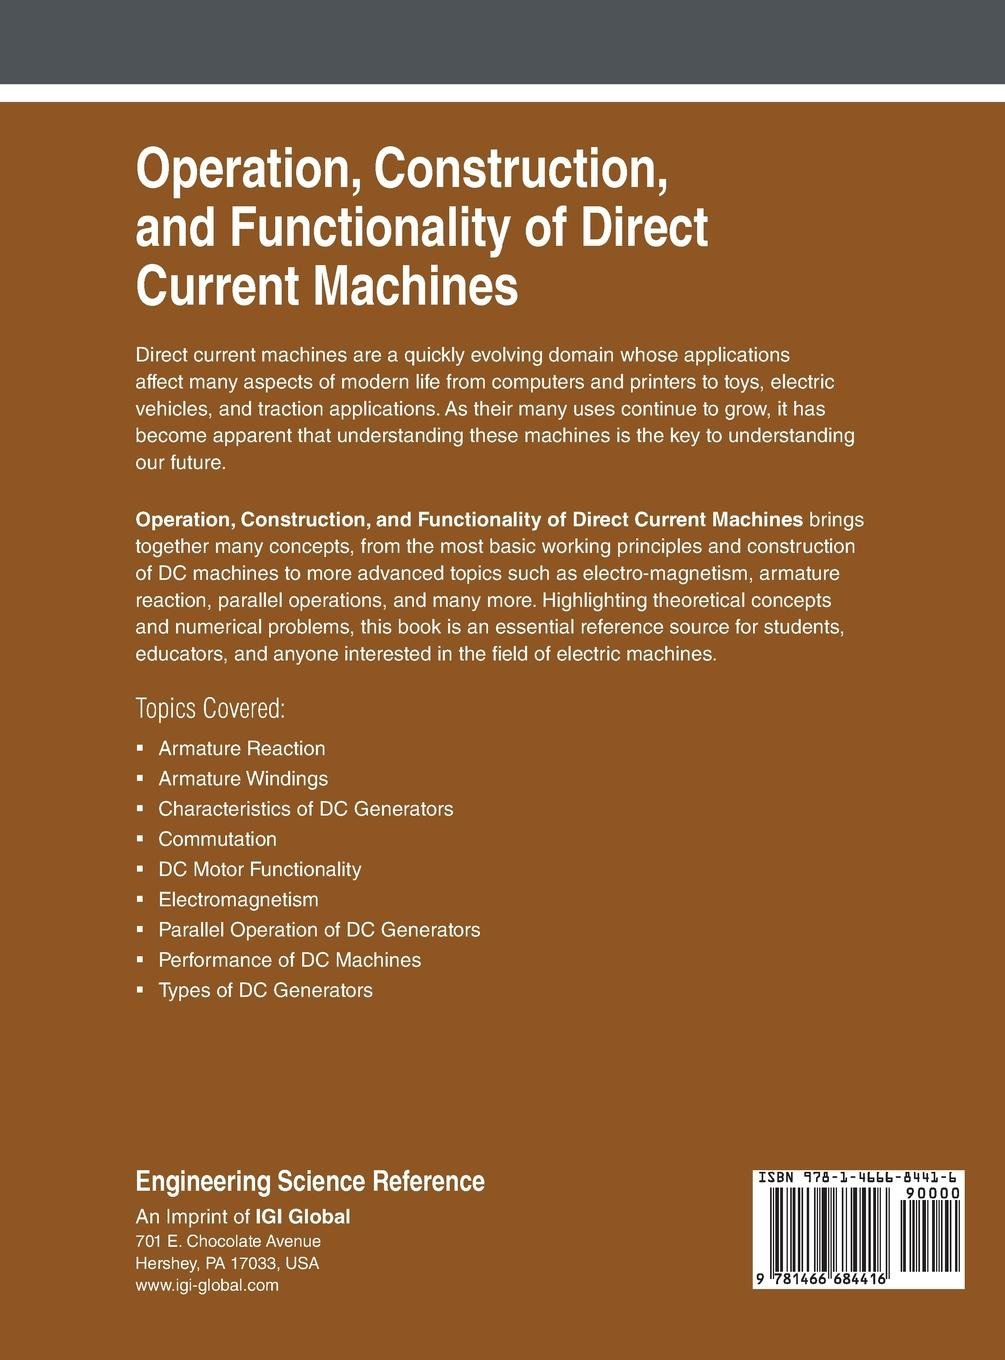 Operation Construction And Functionality Of Direct Current Dc Motors Principles Machines Muhammad Amin Mubashir Husain Rehmani Books